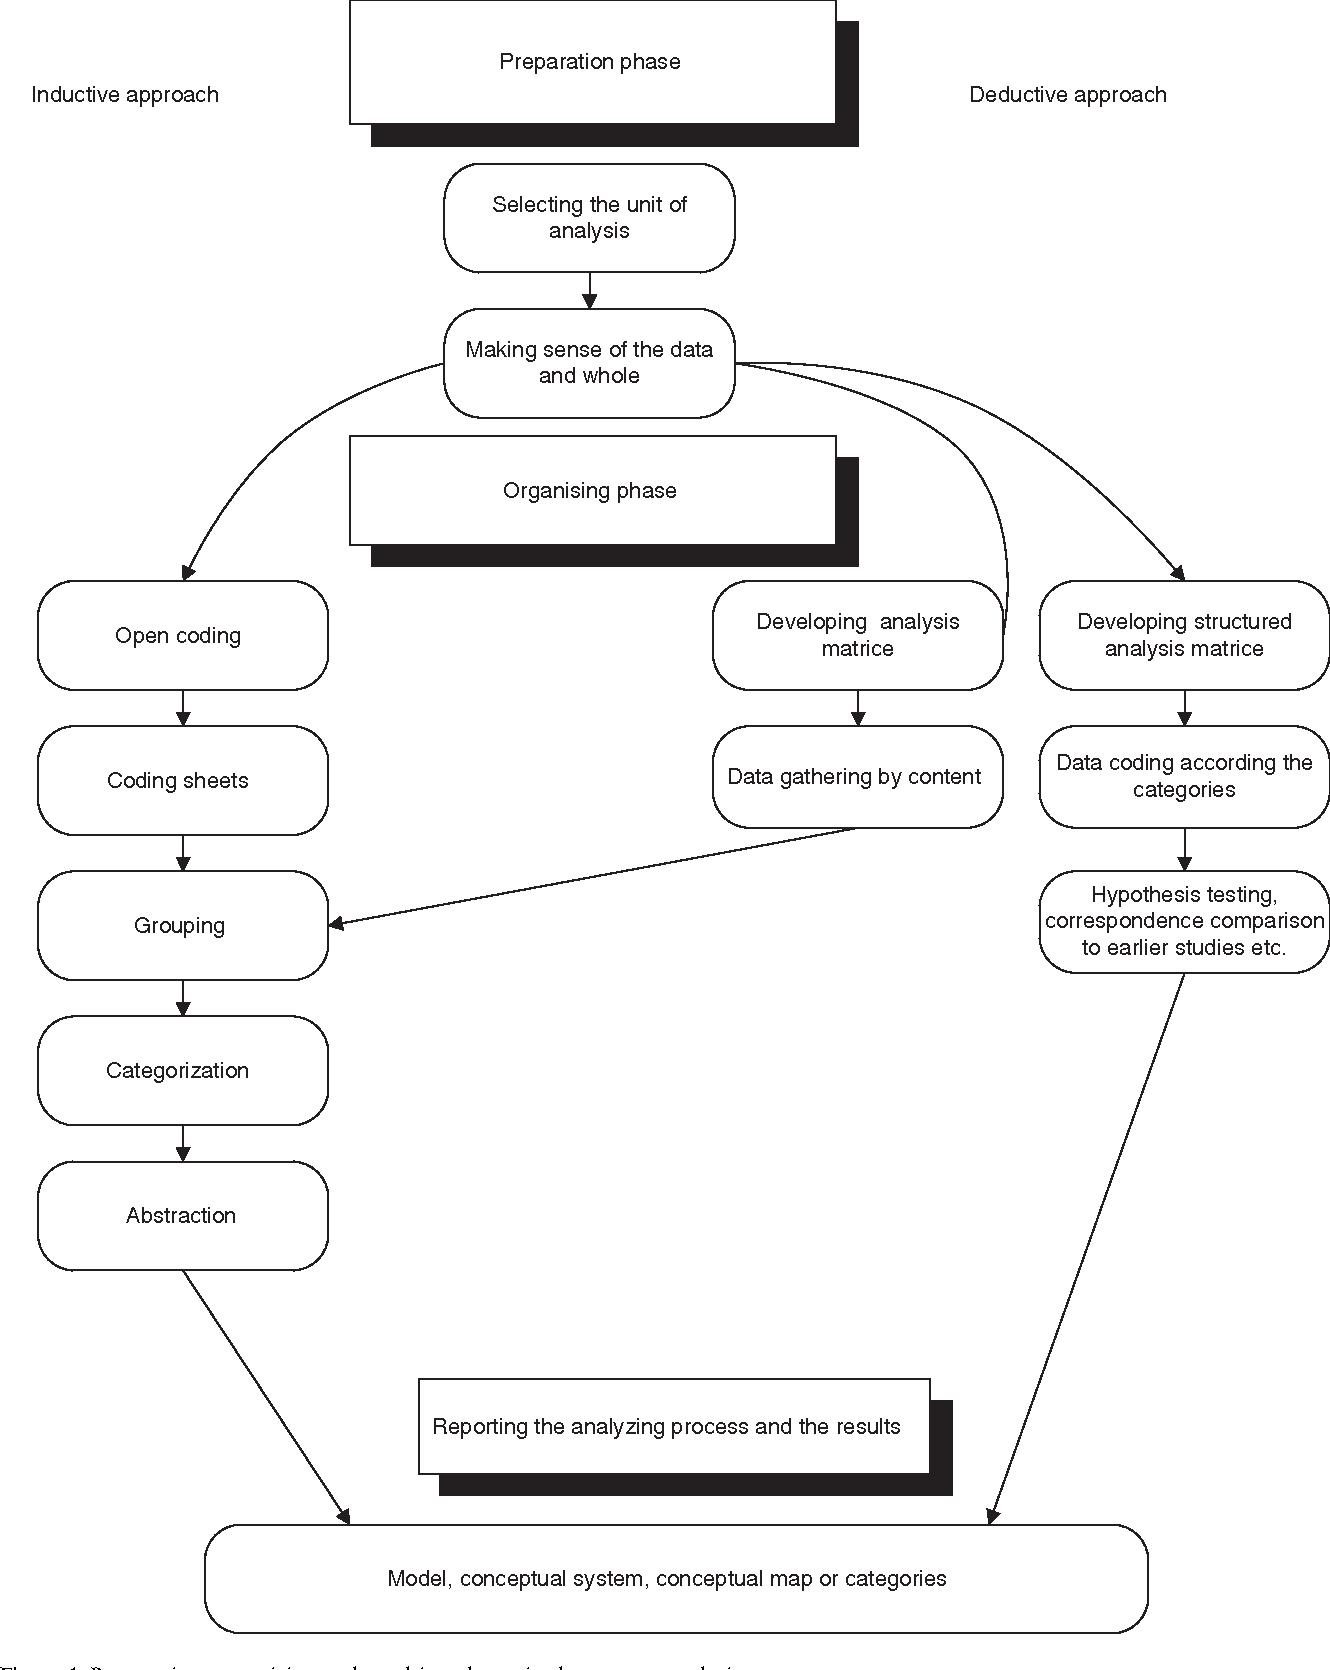 Figure 1 From The Qualitative Contentysis Process